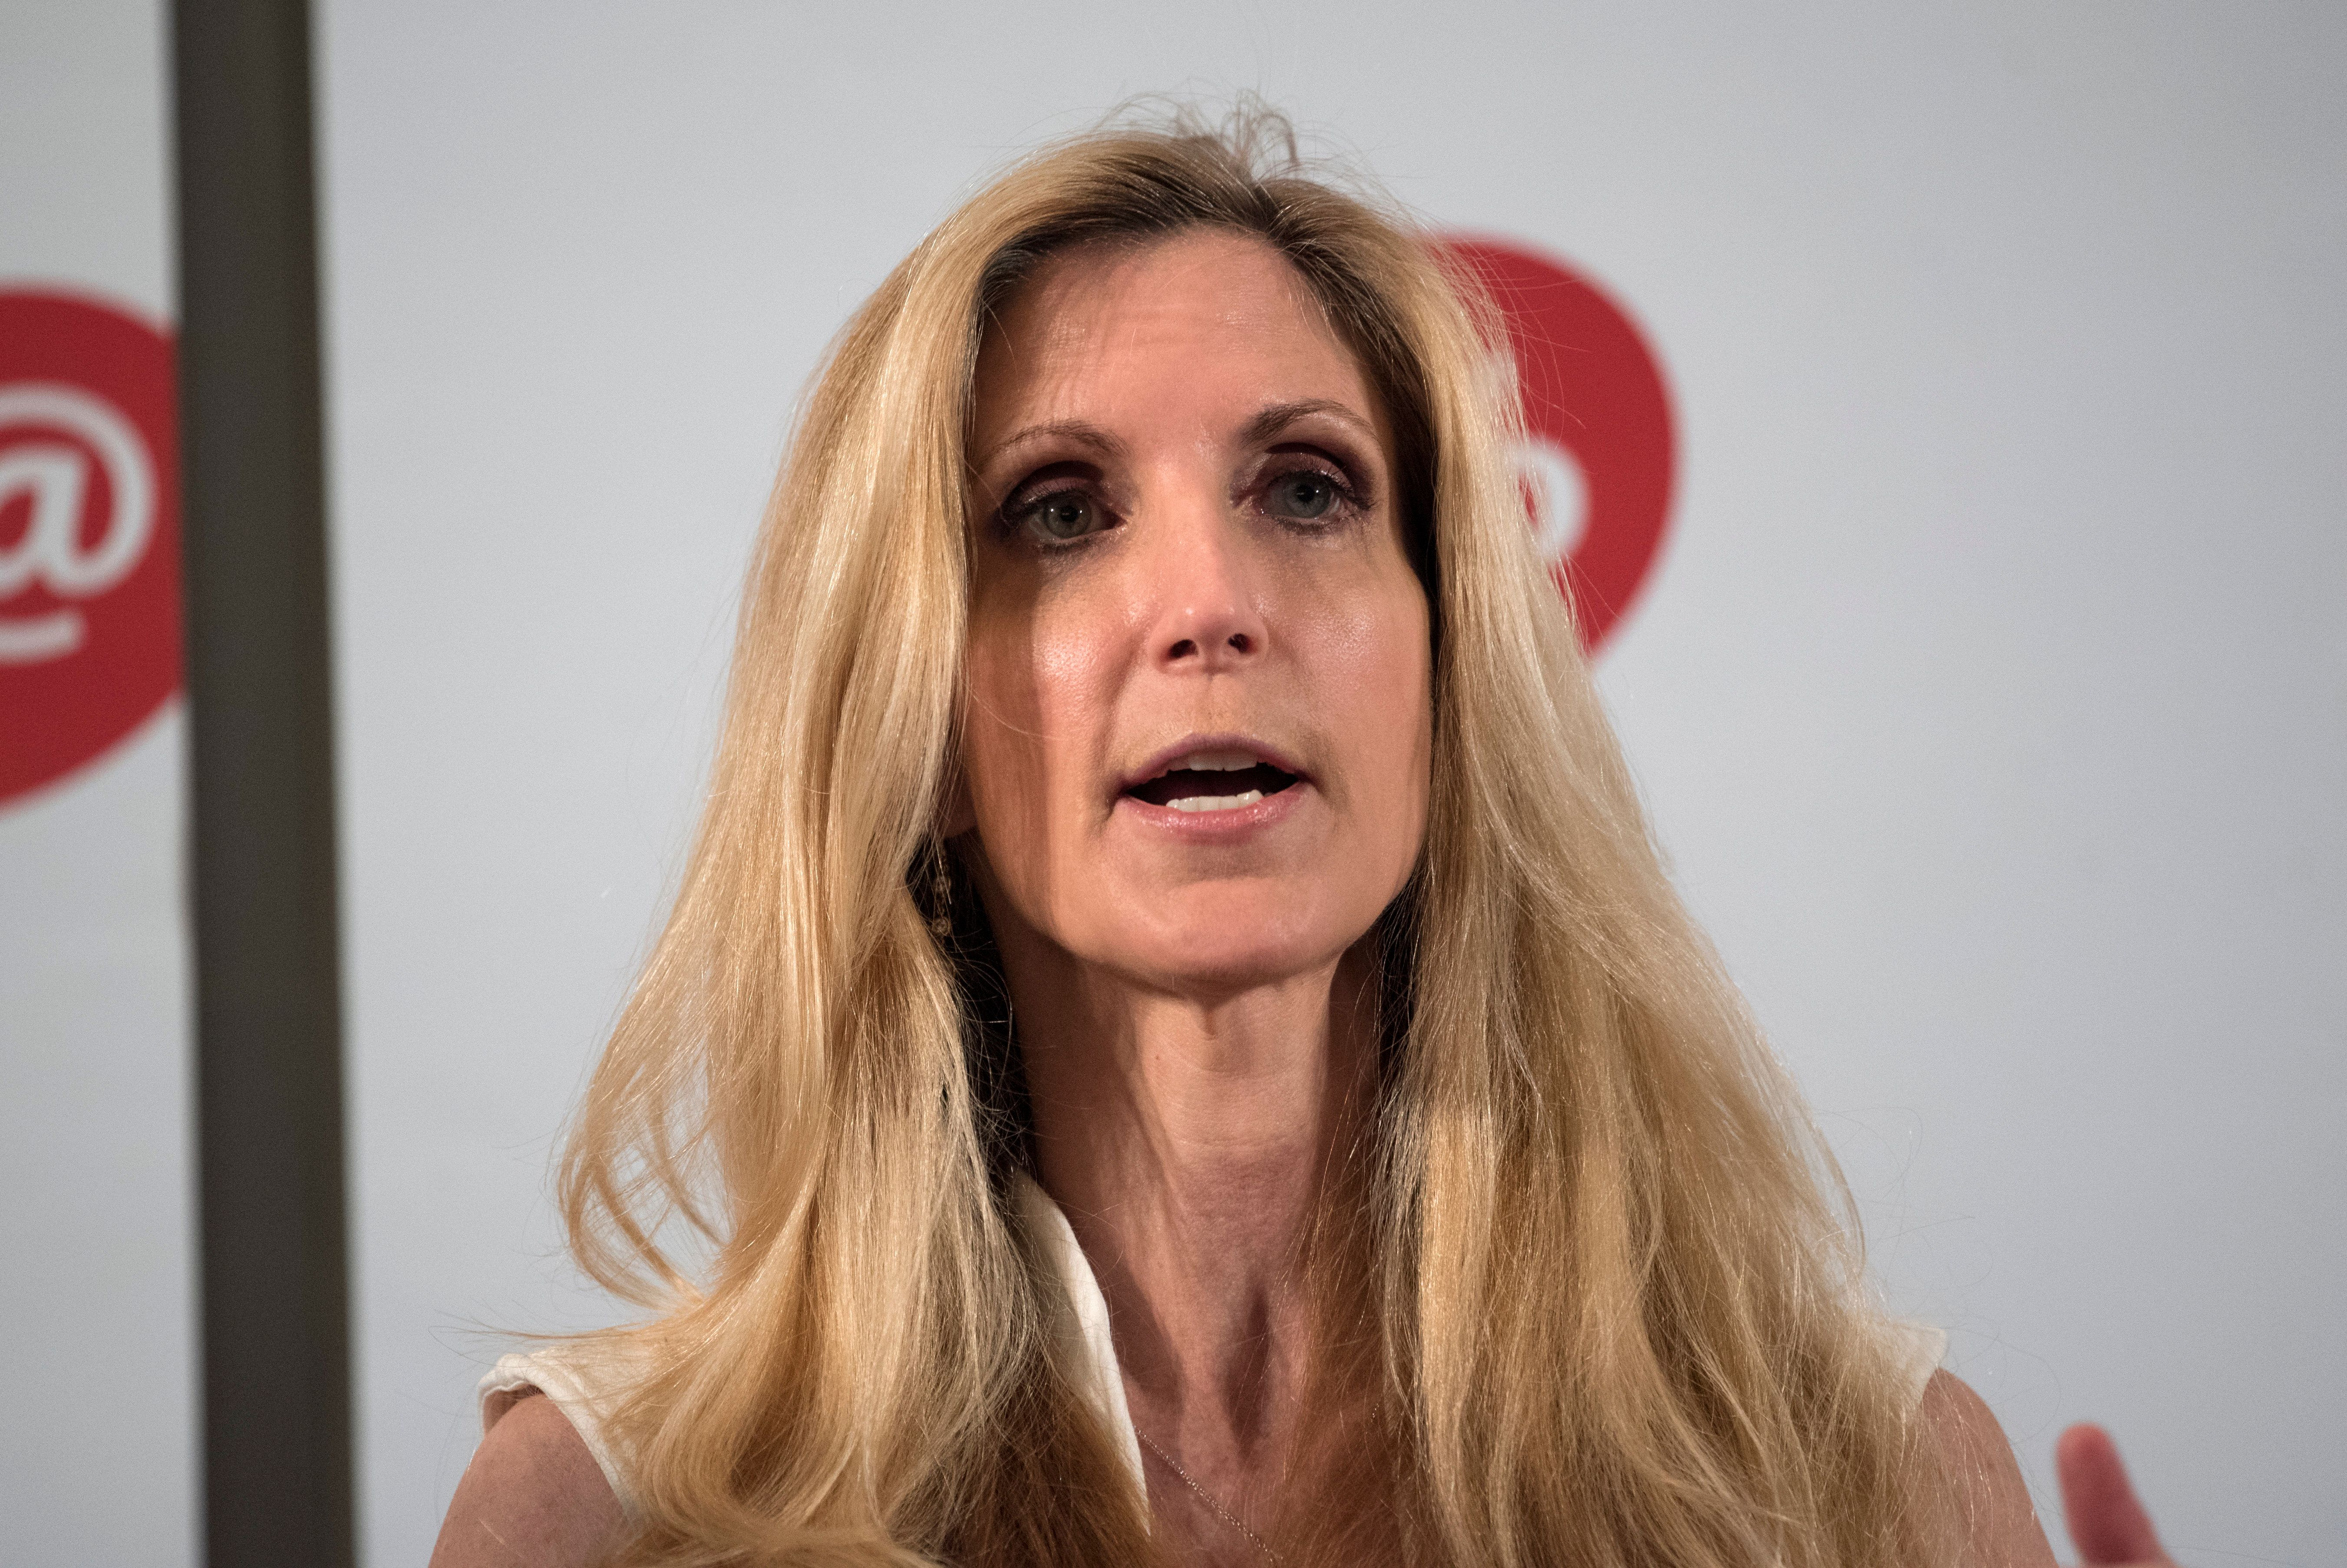 Ann Coulter speaks during Politicon at the Pasadena Convention Center in Pasadena, California on July 29, 2017. Politicon is a bipartisan convention that mixes politics, comedy and entertainment. (Photo by: Ronen Tivony) (Photo by Ronen Tivony/NurPhoto via Getty Images)